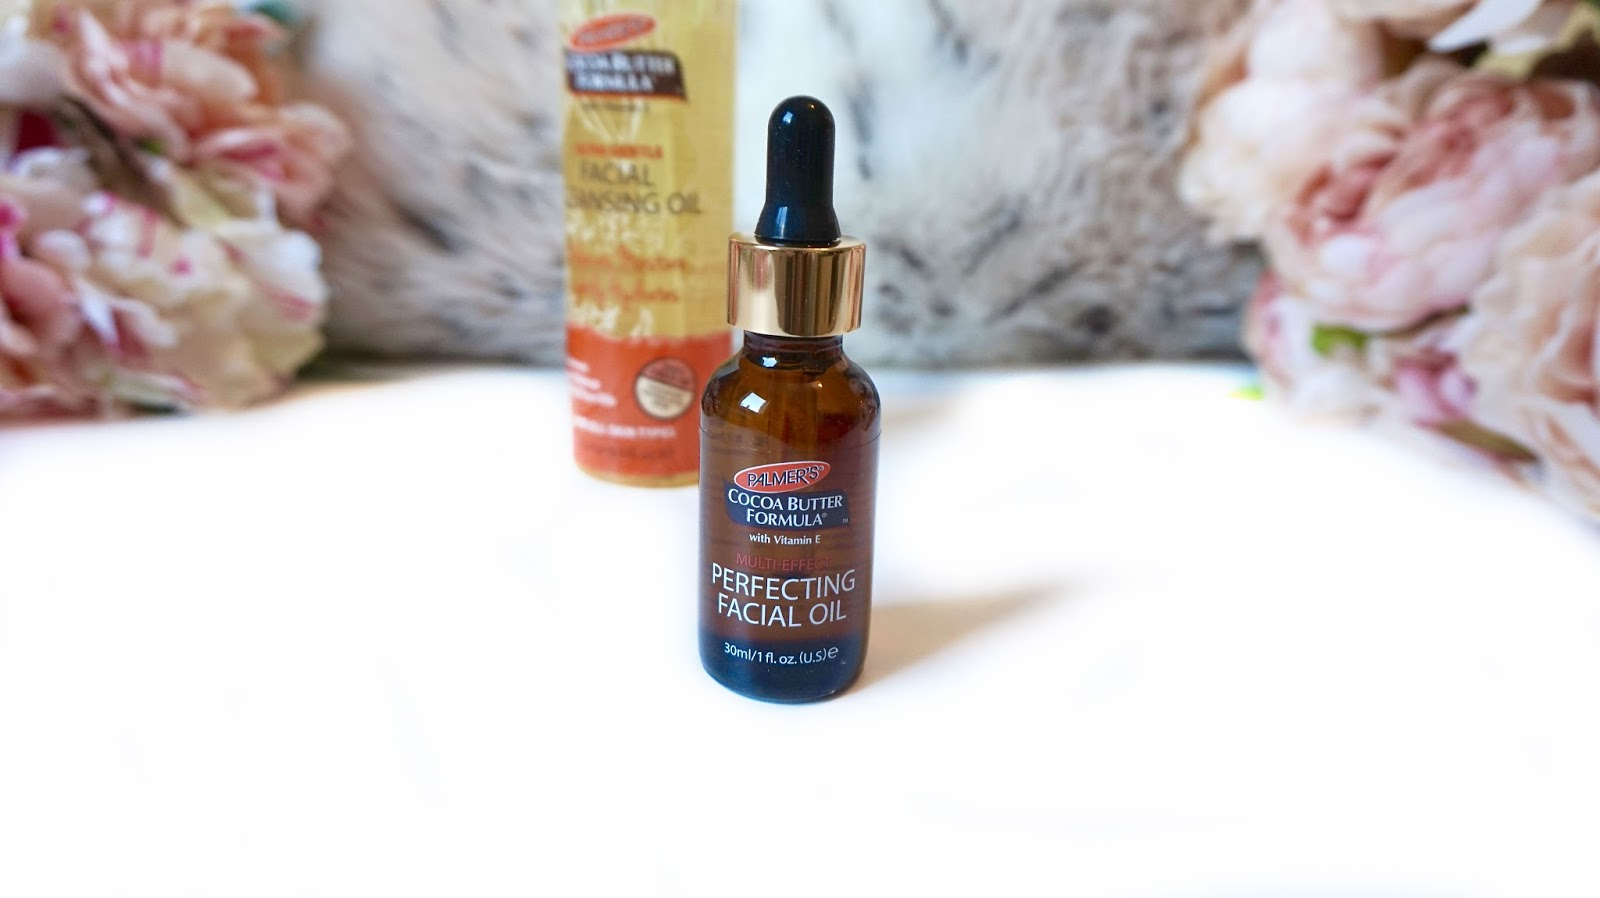 Palmers facial cleanser and oil